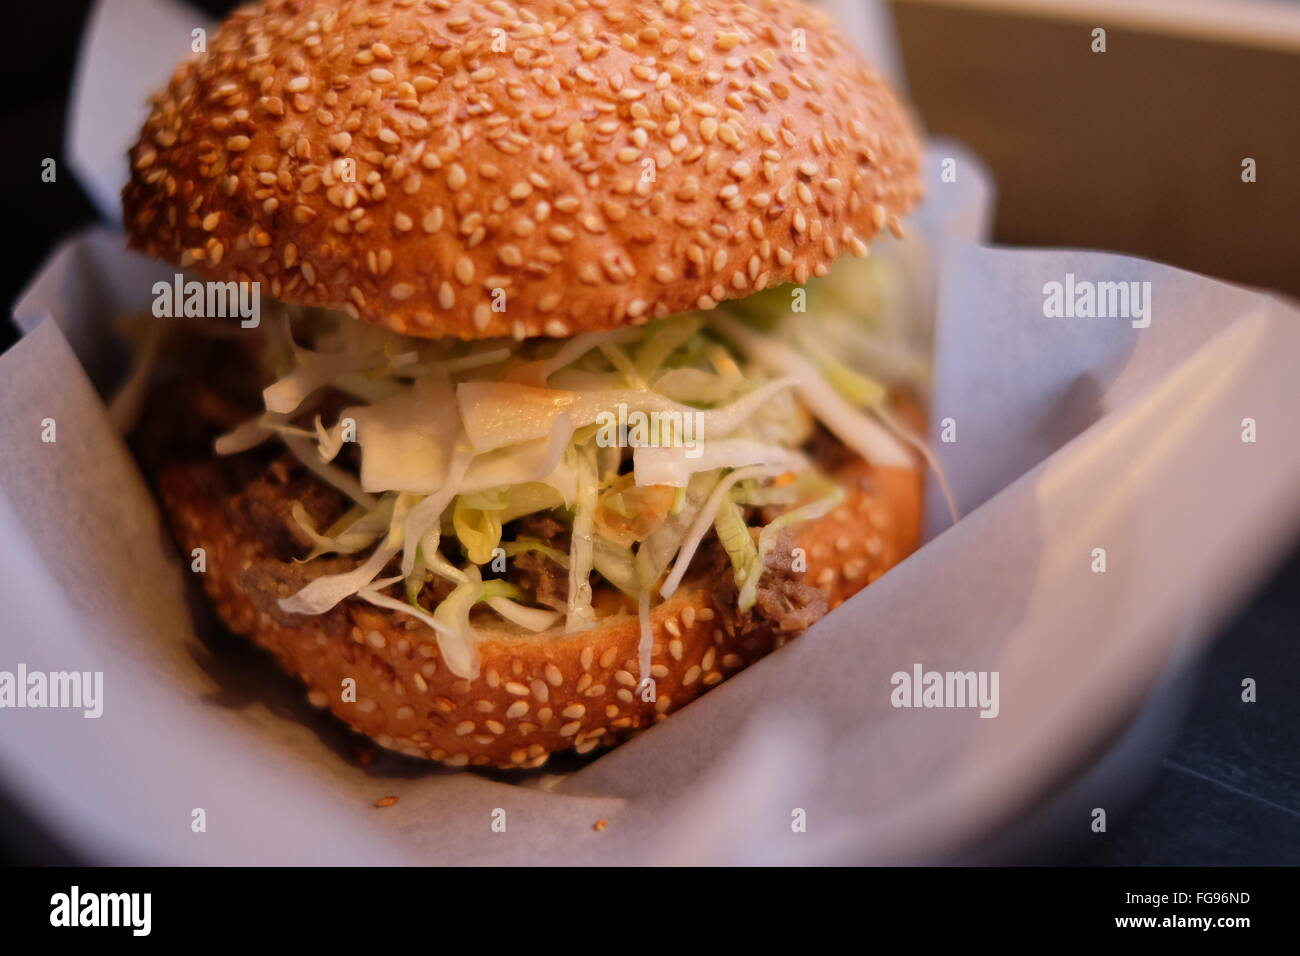 Close-Up Of Burger On Tissue Paper - Stock Image